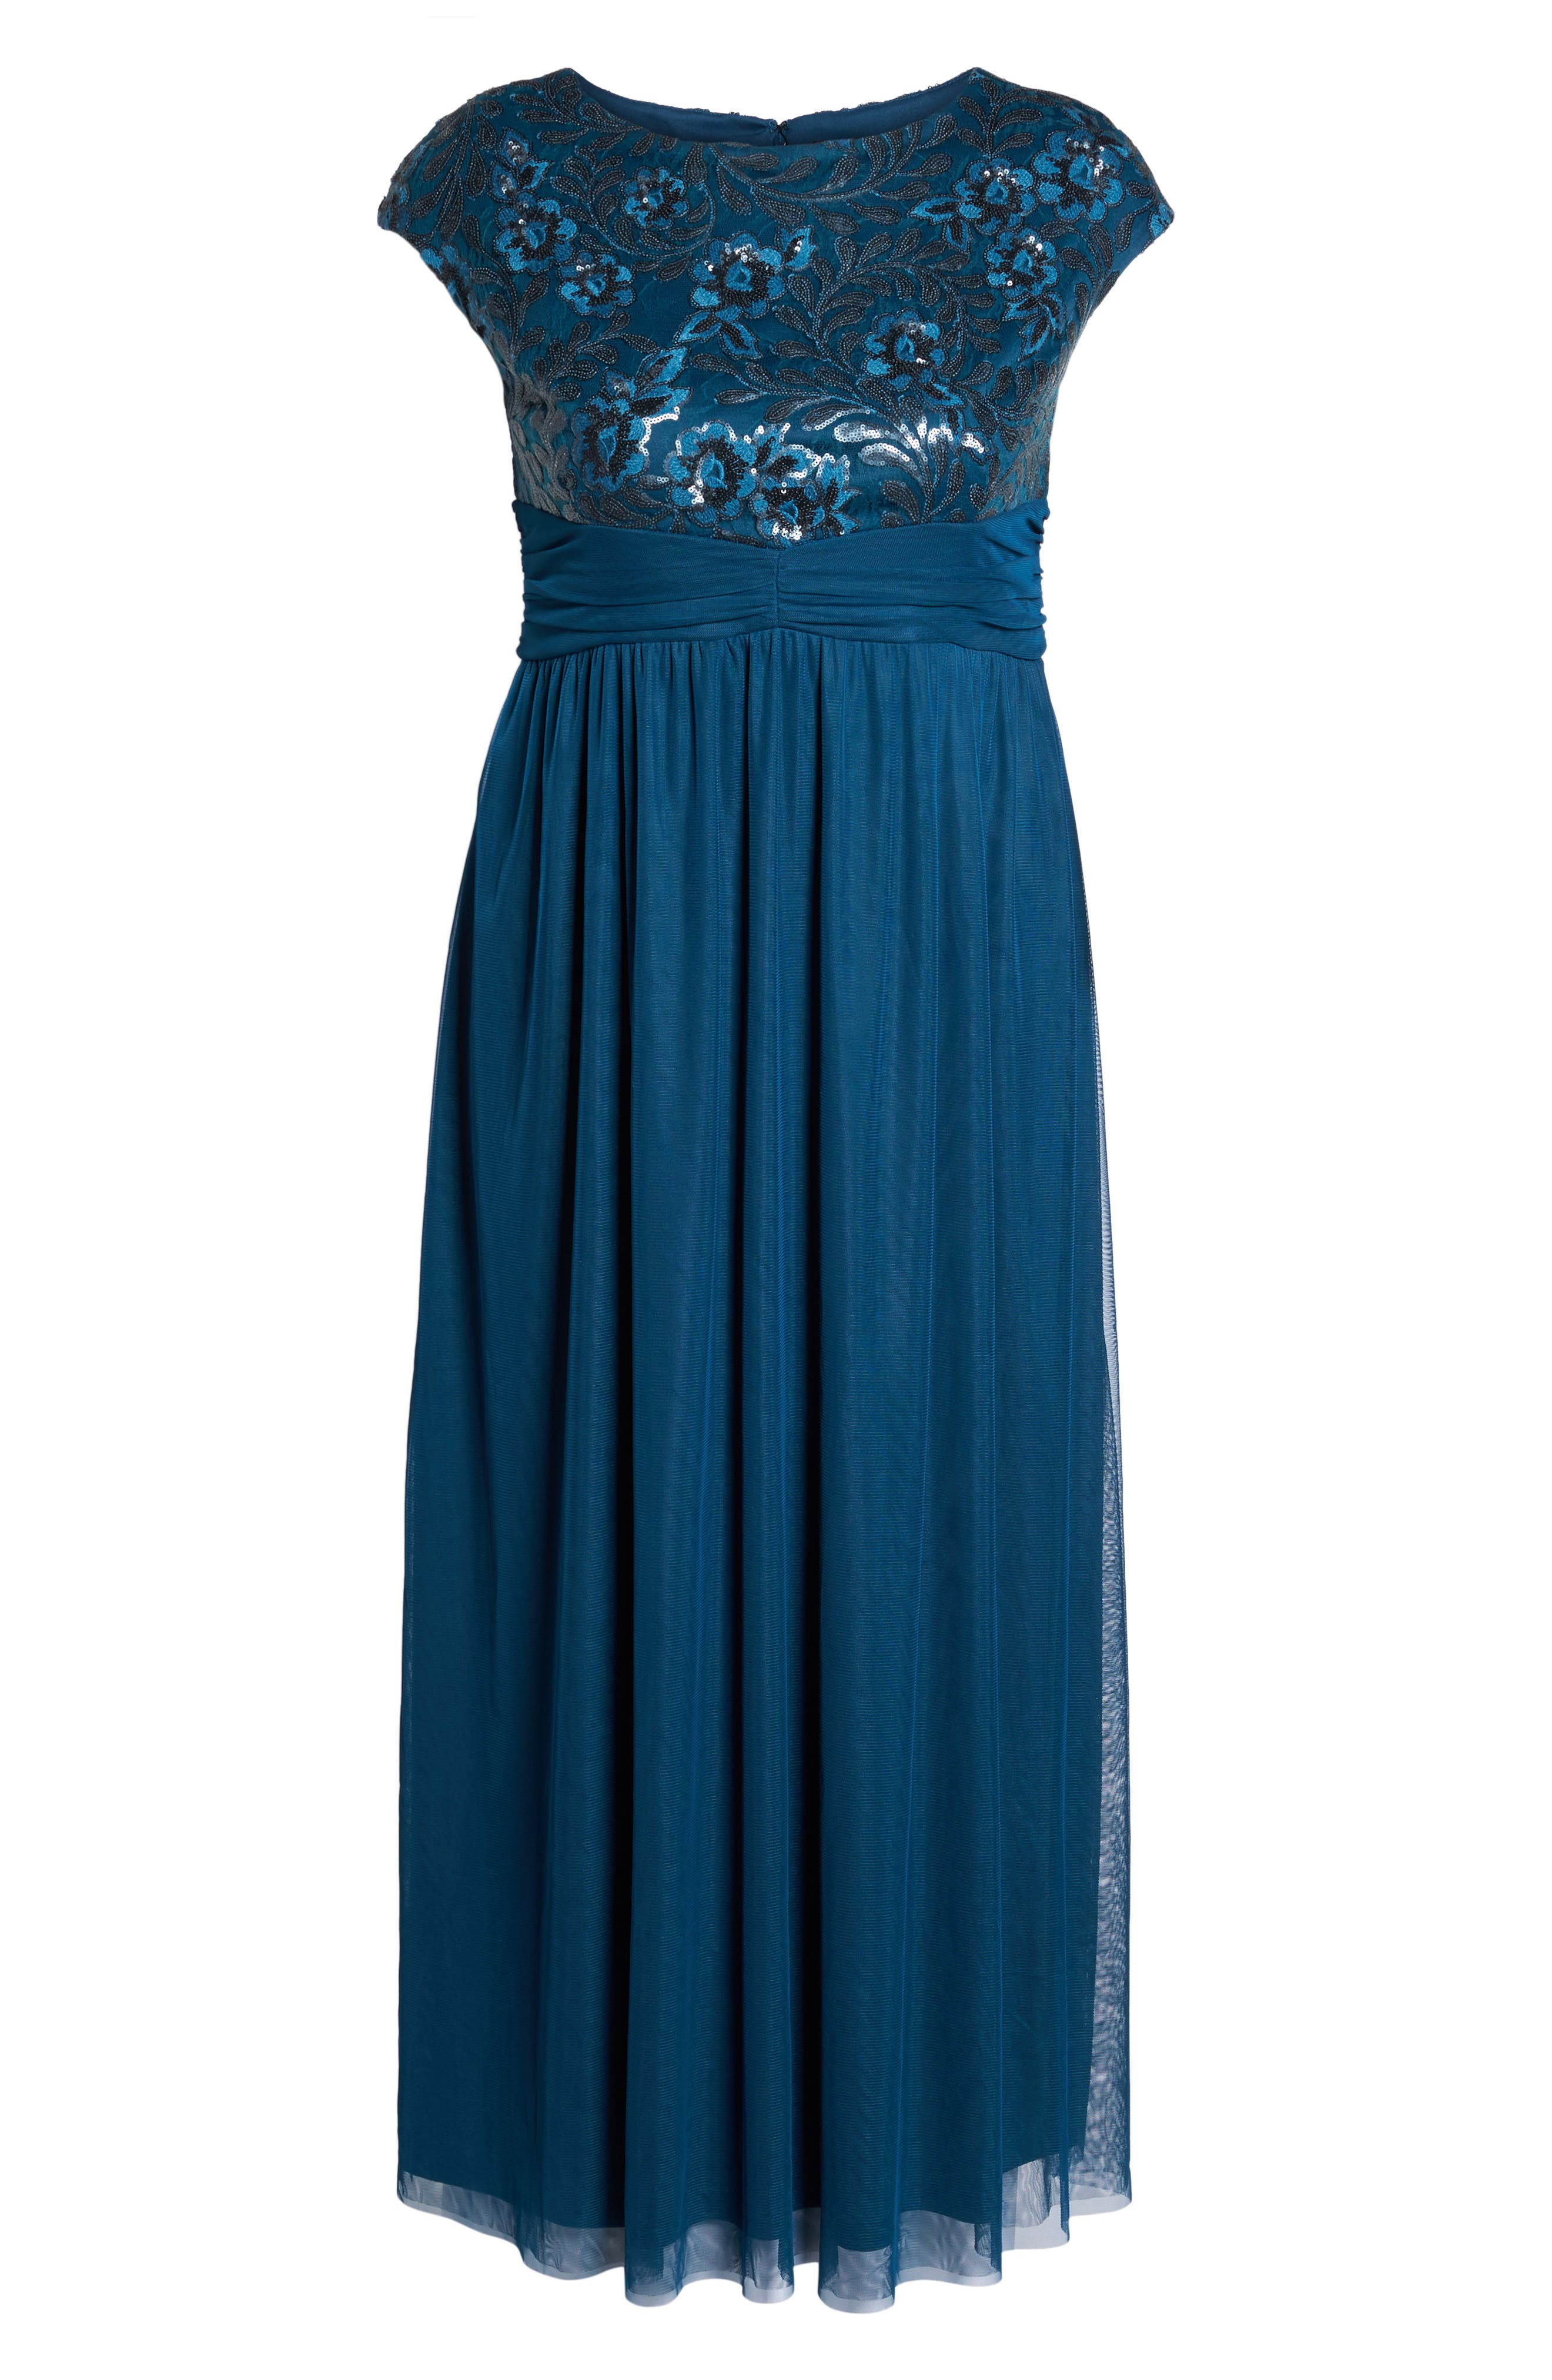 Embellished Cap Sleeve Gown,                             Alternate thumbnail 6, color,                             TEAL